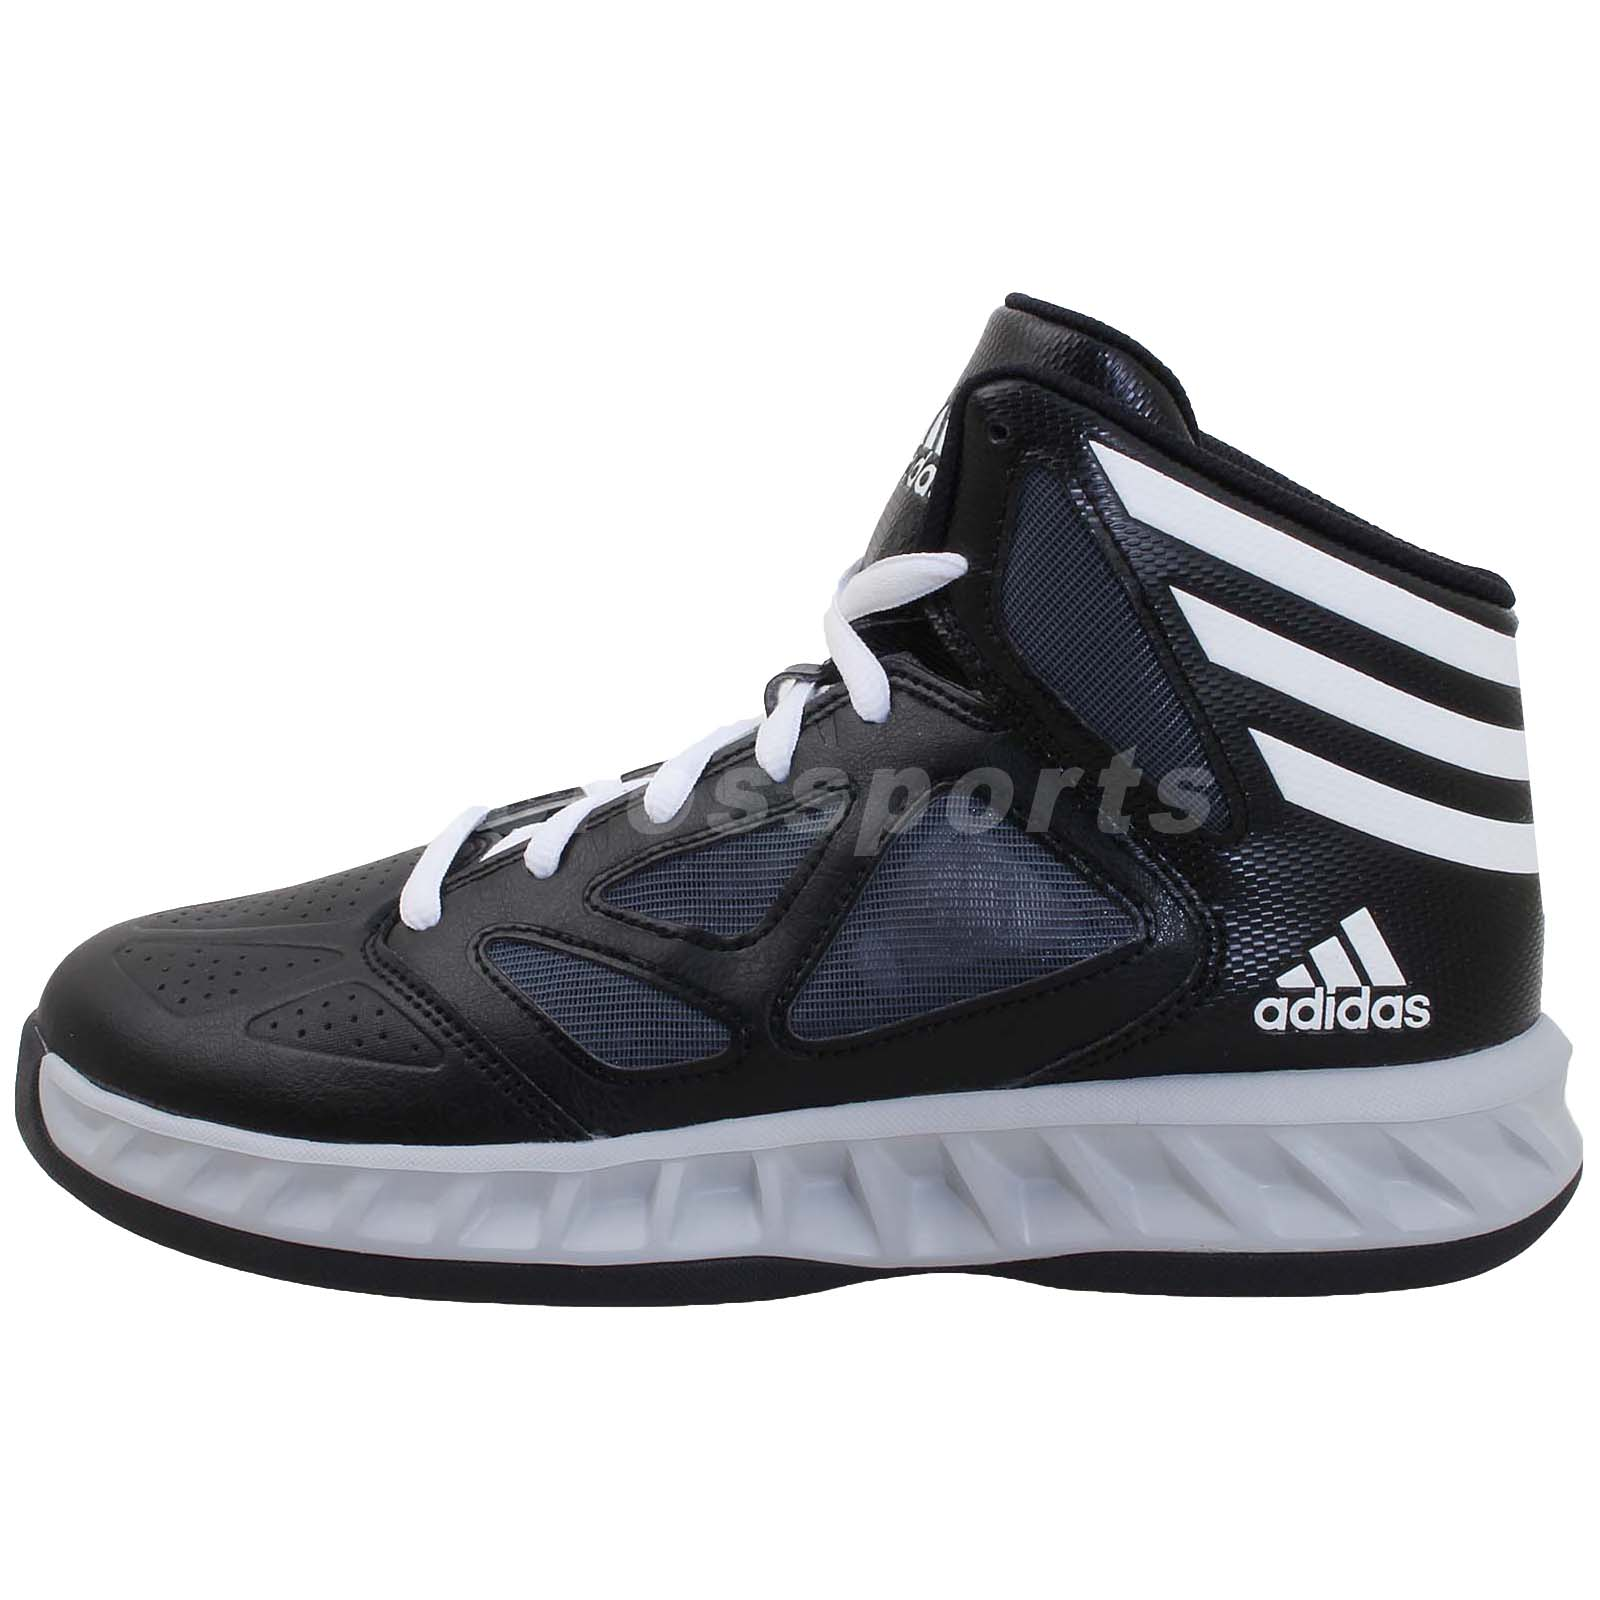 Shoes For Men 2013 Adidas Adidas Lift Off...